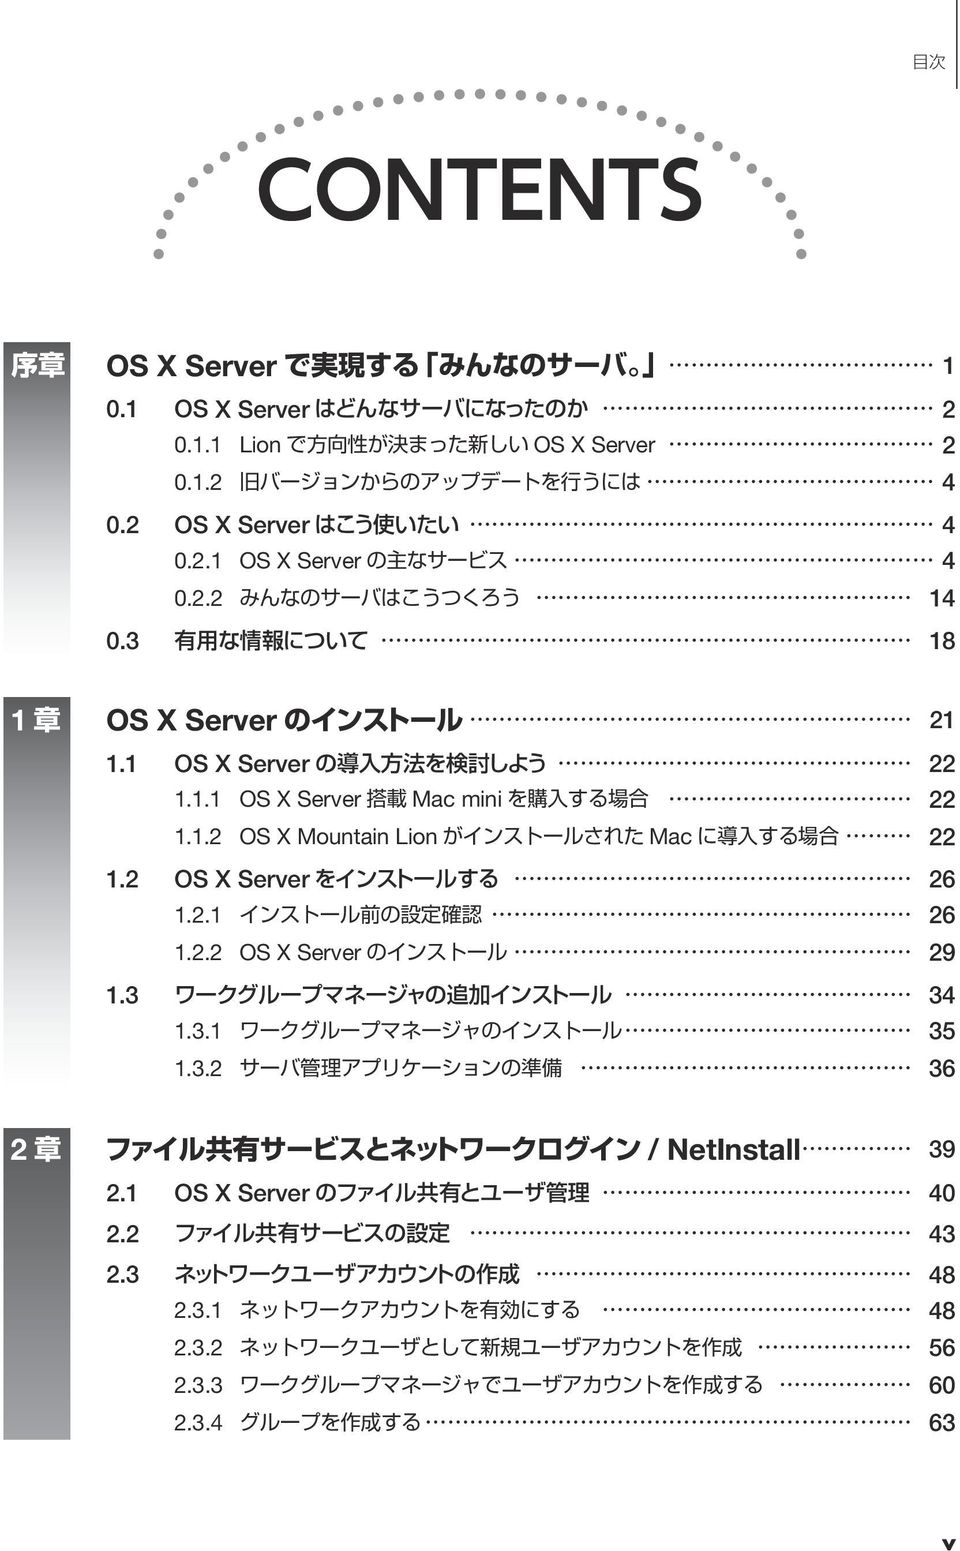 2 OS X Server 26 1.2.1 26 1.2.2 OS X Server 29 1.3 34 1.3.1 35 1.3.2 36 2 / NetInstall 39 2.